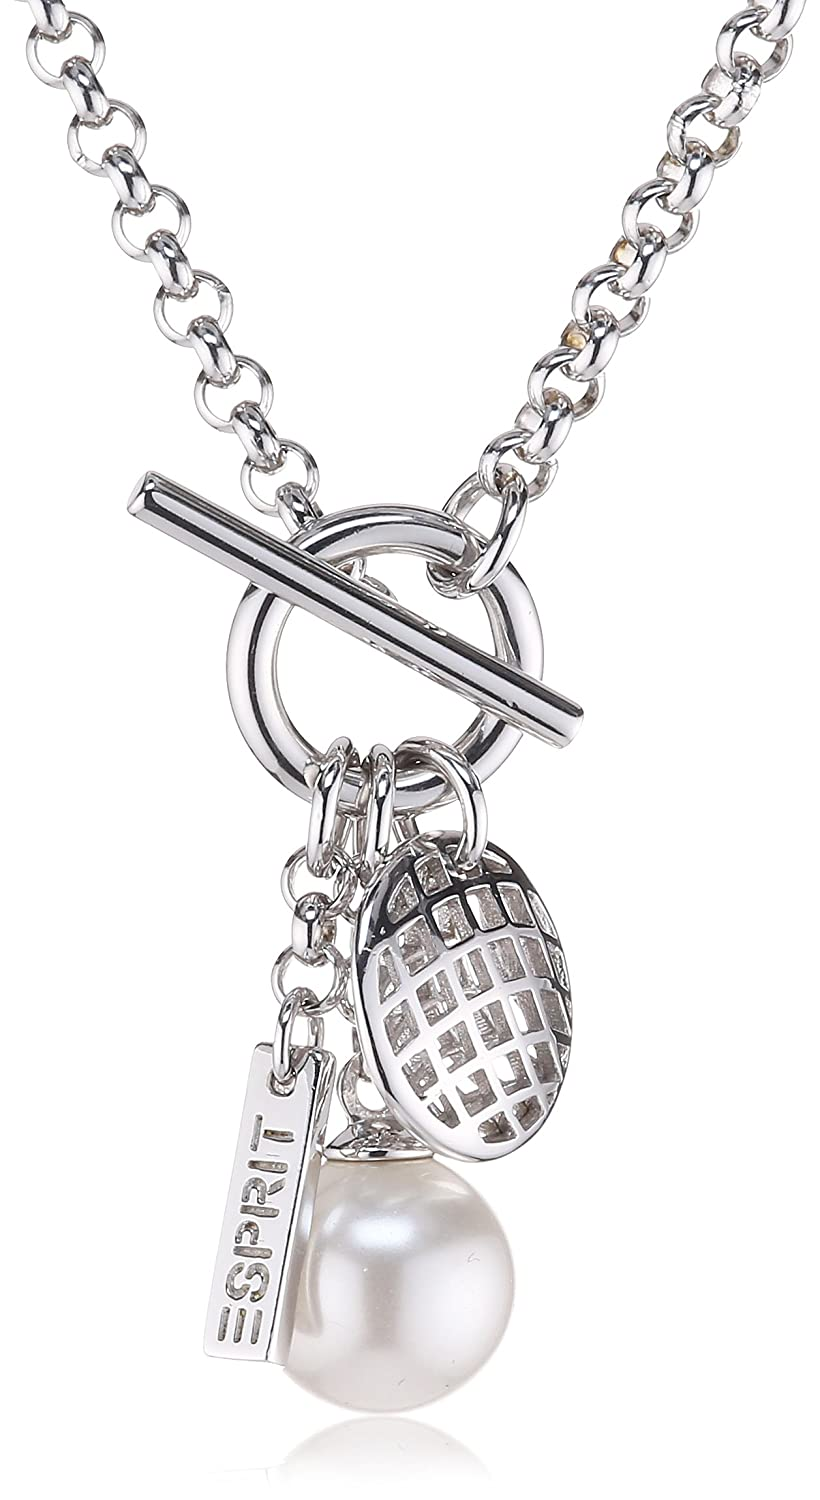 ESPRIT Jewels Damen-Halskette Pearl Lattice 925 Sterling Silber 40 cm S.ESNL92240A400